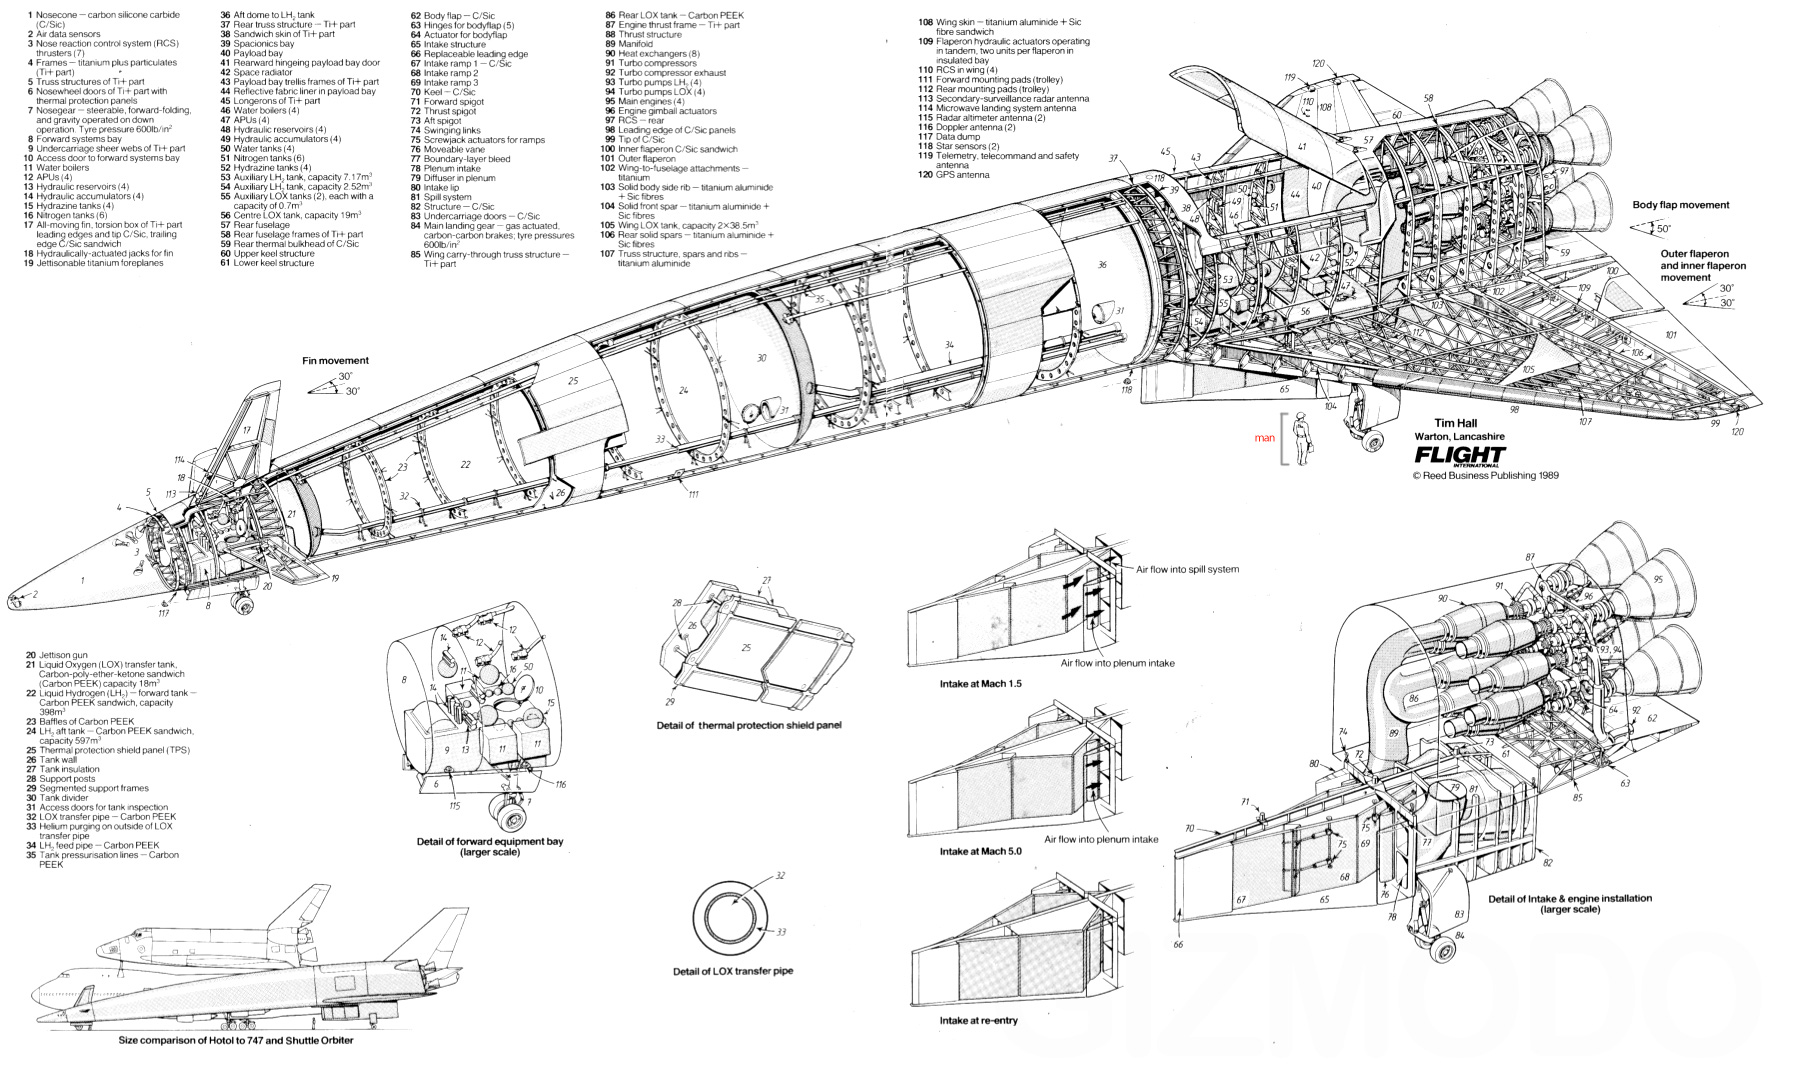 spaceship cutaway diagram 2000 mustang v6 radio wiring hotol the reusable coming back from 80s